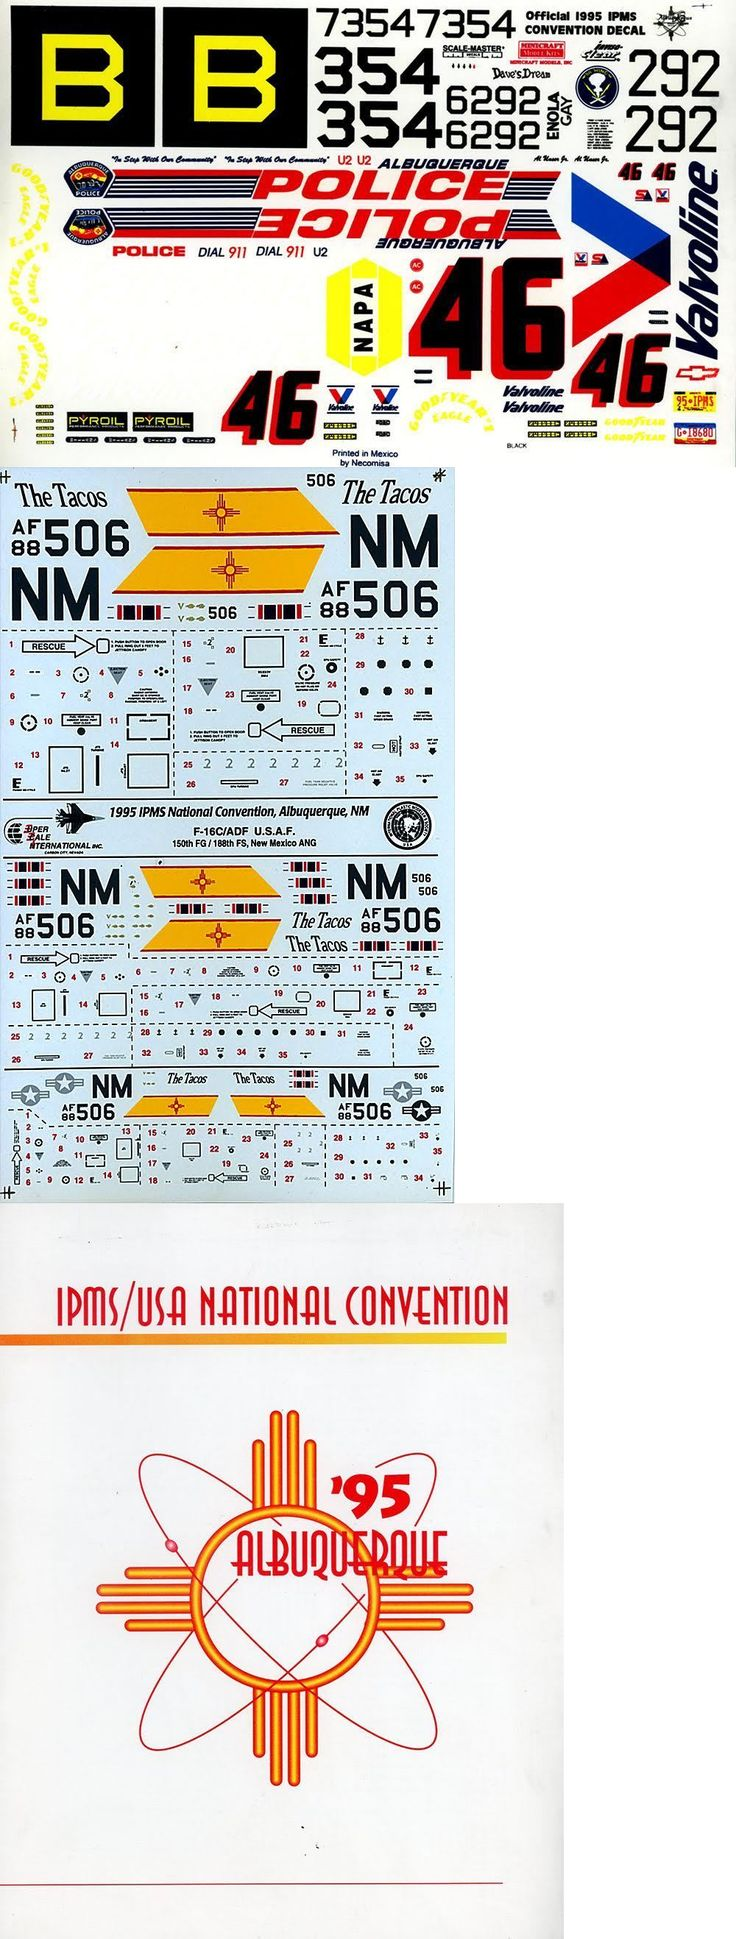 Decals 152933: Ipms Usa 1995 National Convention Albuquerque Decal Set B-29A, Enola Gay, 1 48 -> BUY IT NOW ONLY: $39.95 on eBay!